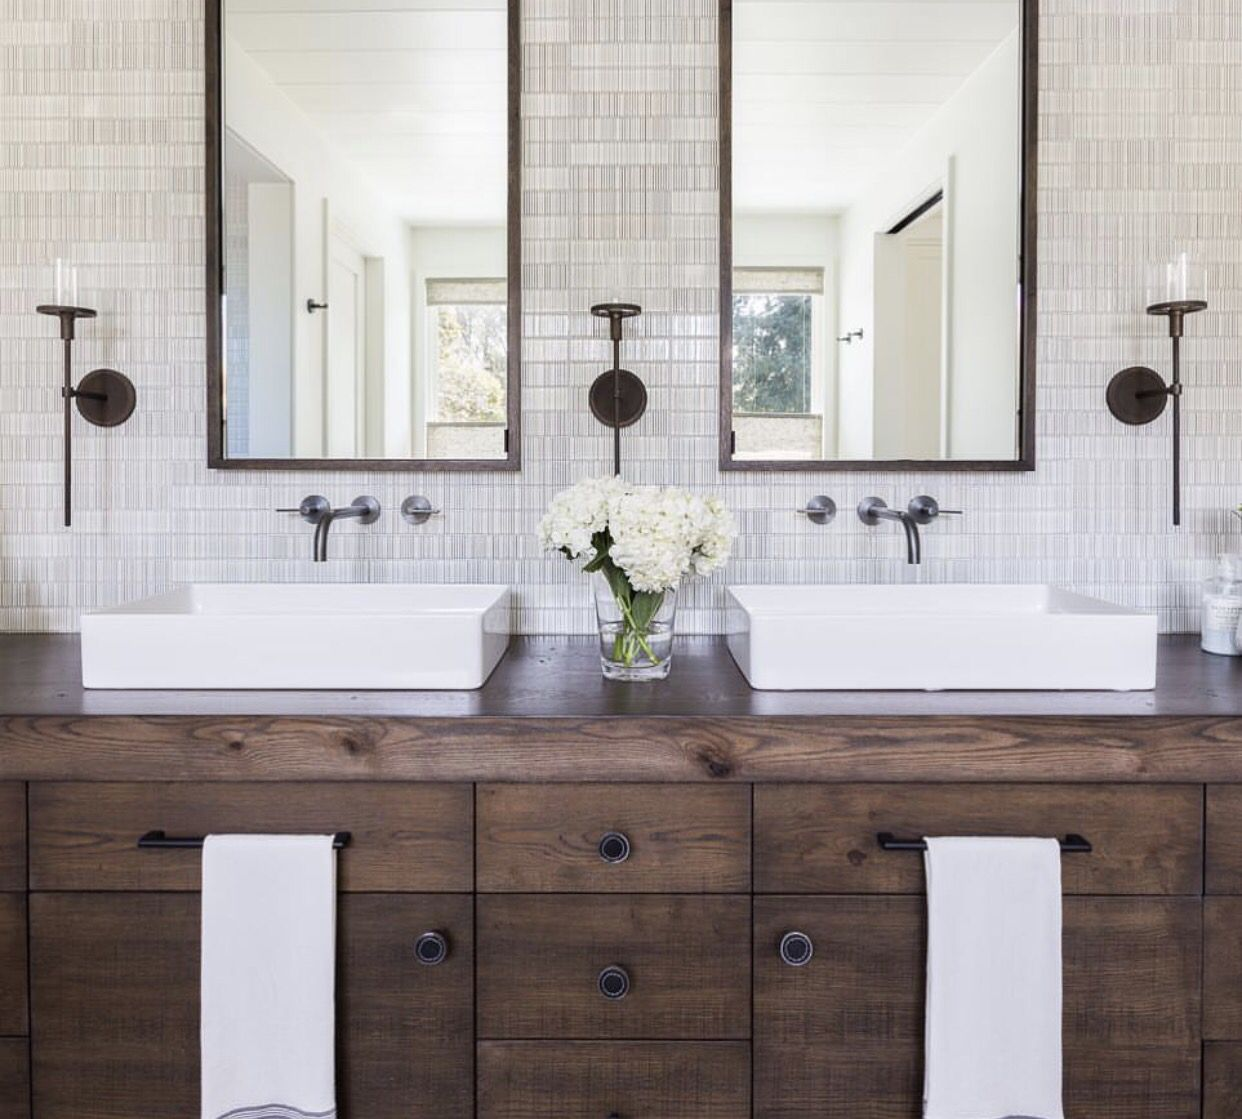 Pin by Shayla Velthuis on Powder Room   Pinterest   Vanities, Woods ...